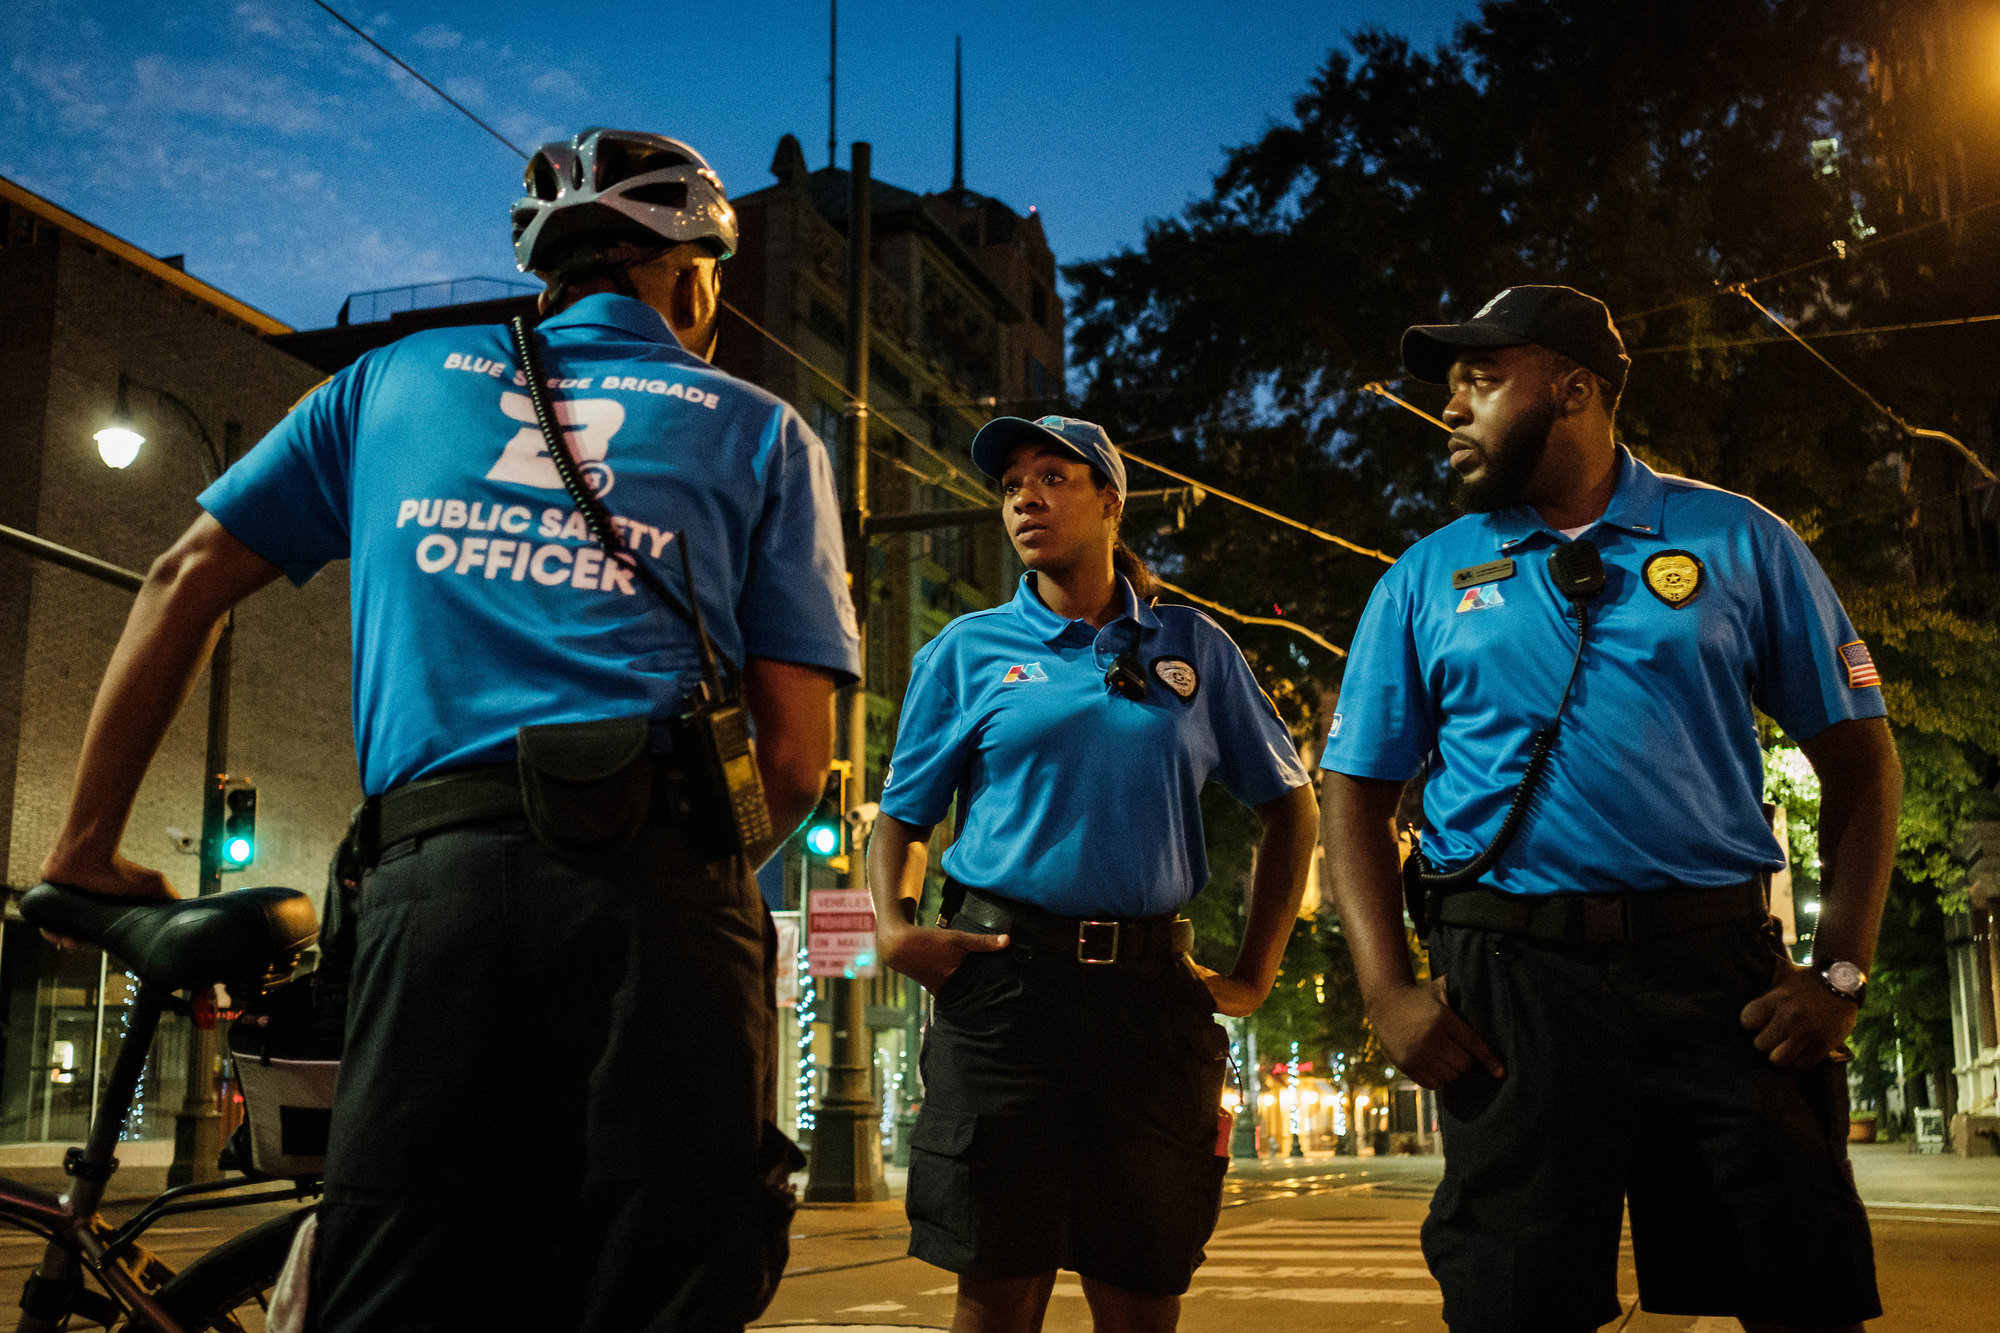 In response to a reduction in police officers in Memphis, Tenn., the Blue Suede Brigade, a private security force, patrols the city's tourist areas. From left, Blue Suede Brigade members Kcbena Cash, Tamala Johnson and Nathaniel Lewis worked the night shift.